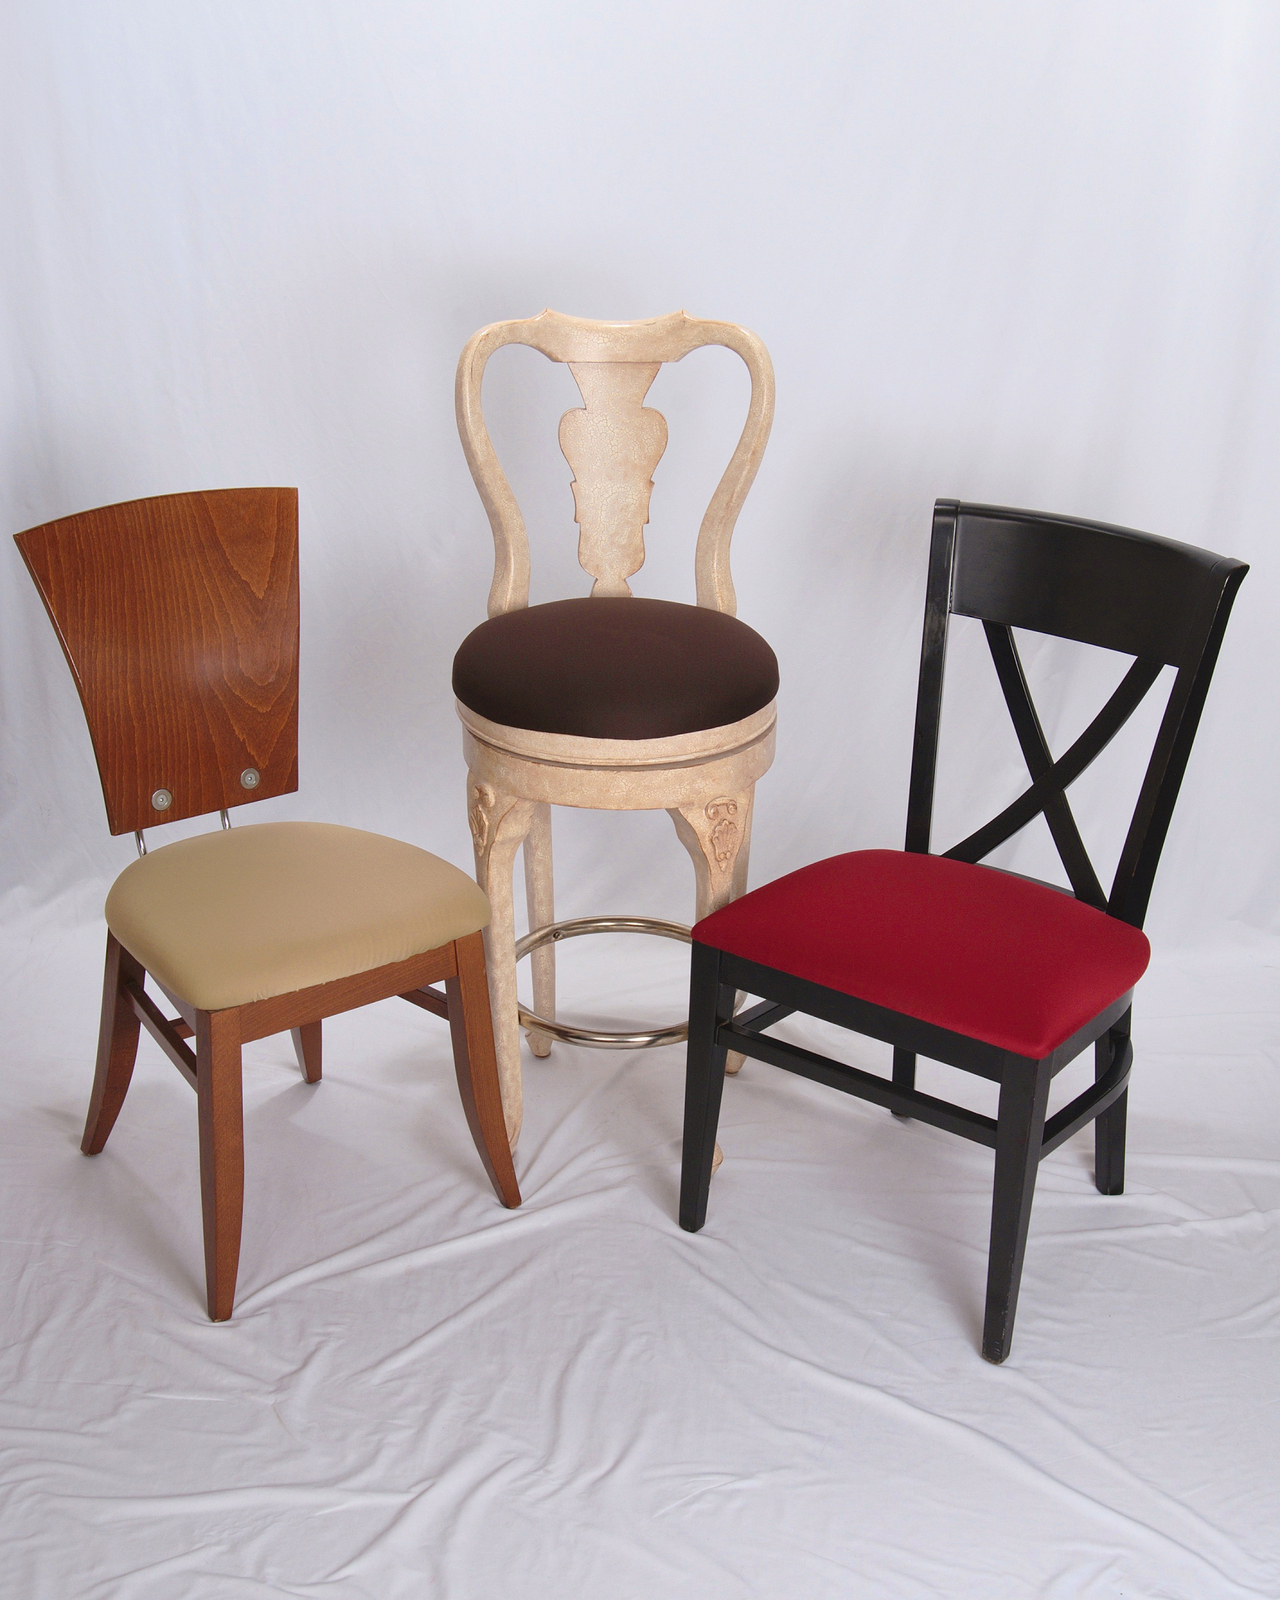 Cover Dining Room Chairs: EZ CHAIR COVERS ,DINING ROOM CHAIR COVERS, PACK OF 6 OR 4